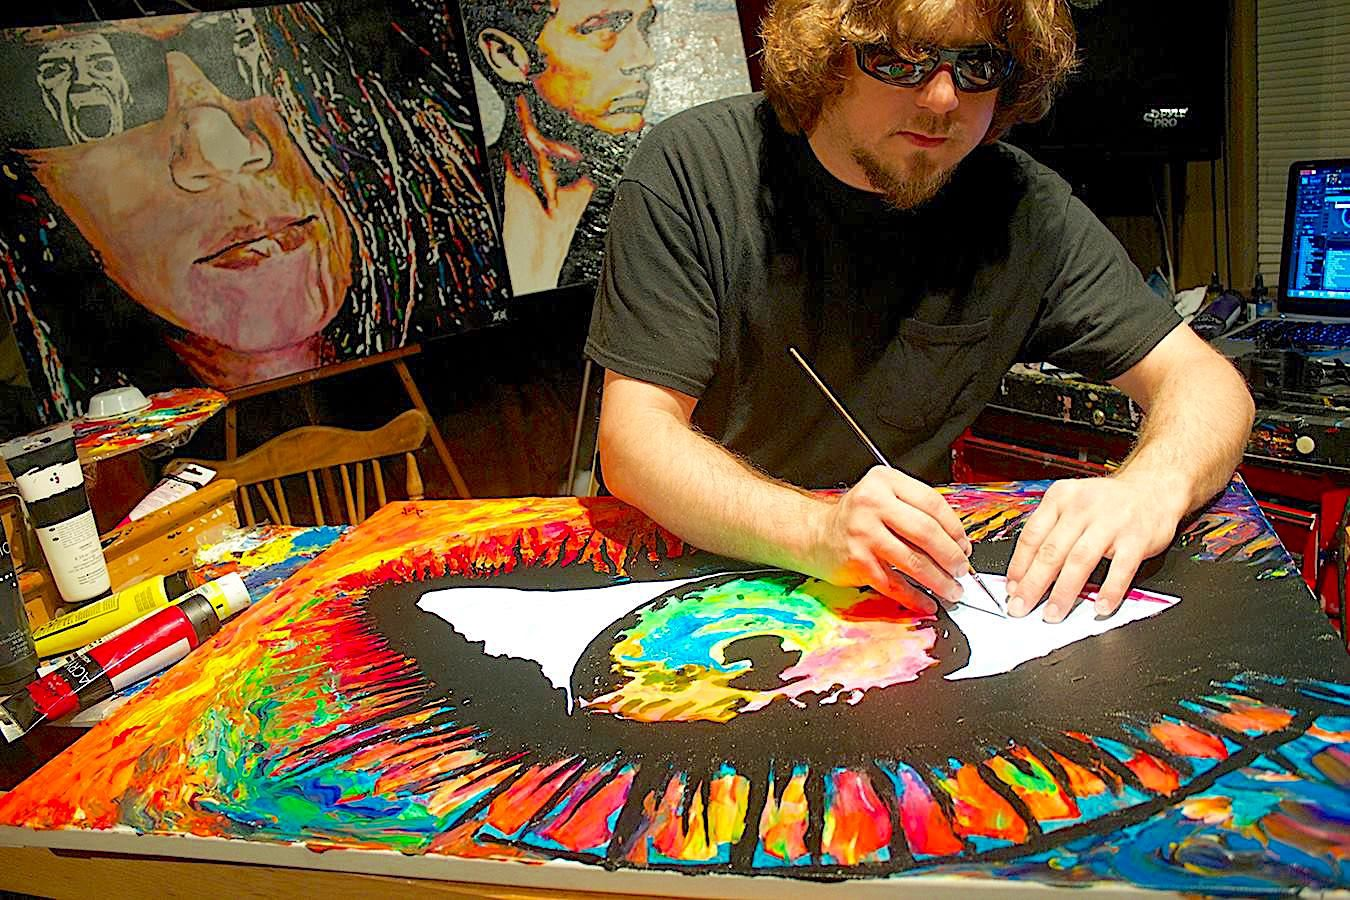 Painting Blind With Visually Impaired Visual Artist John Bramblitt By D Emptyspace D Emptyspace Medium